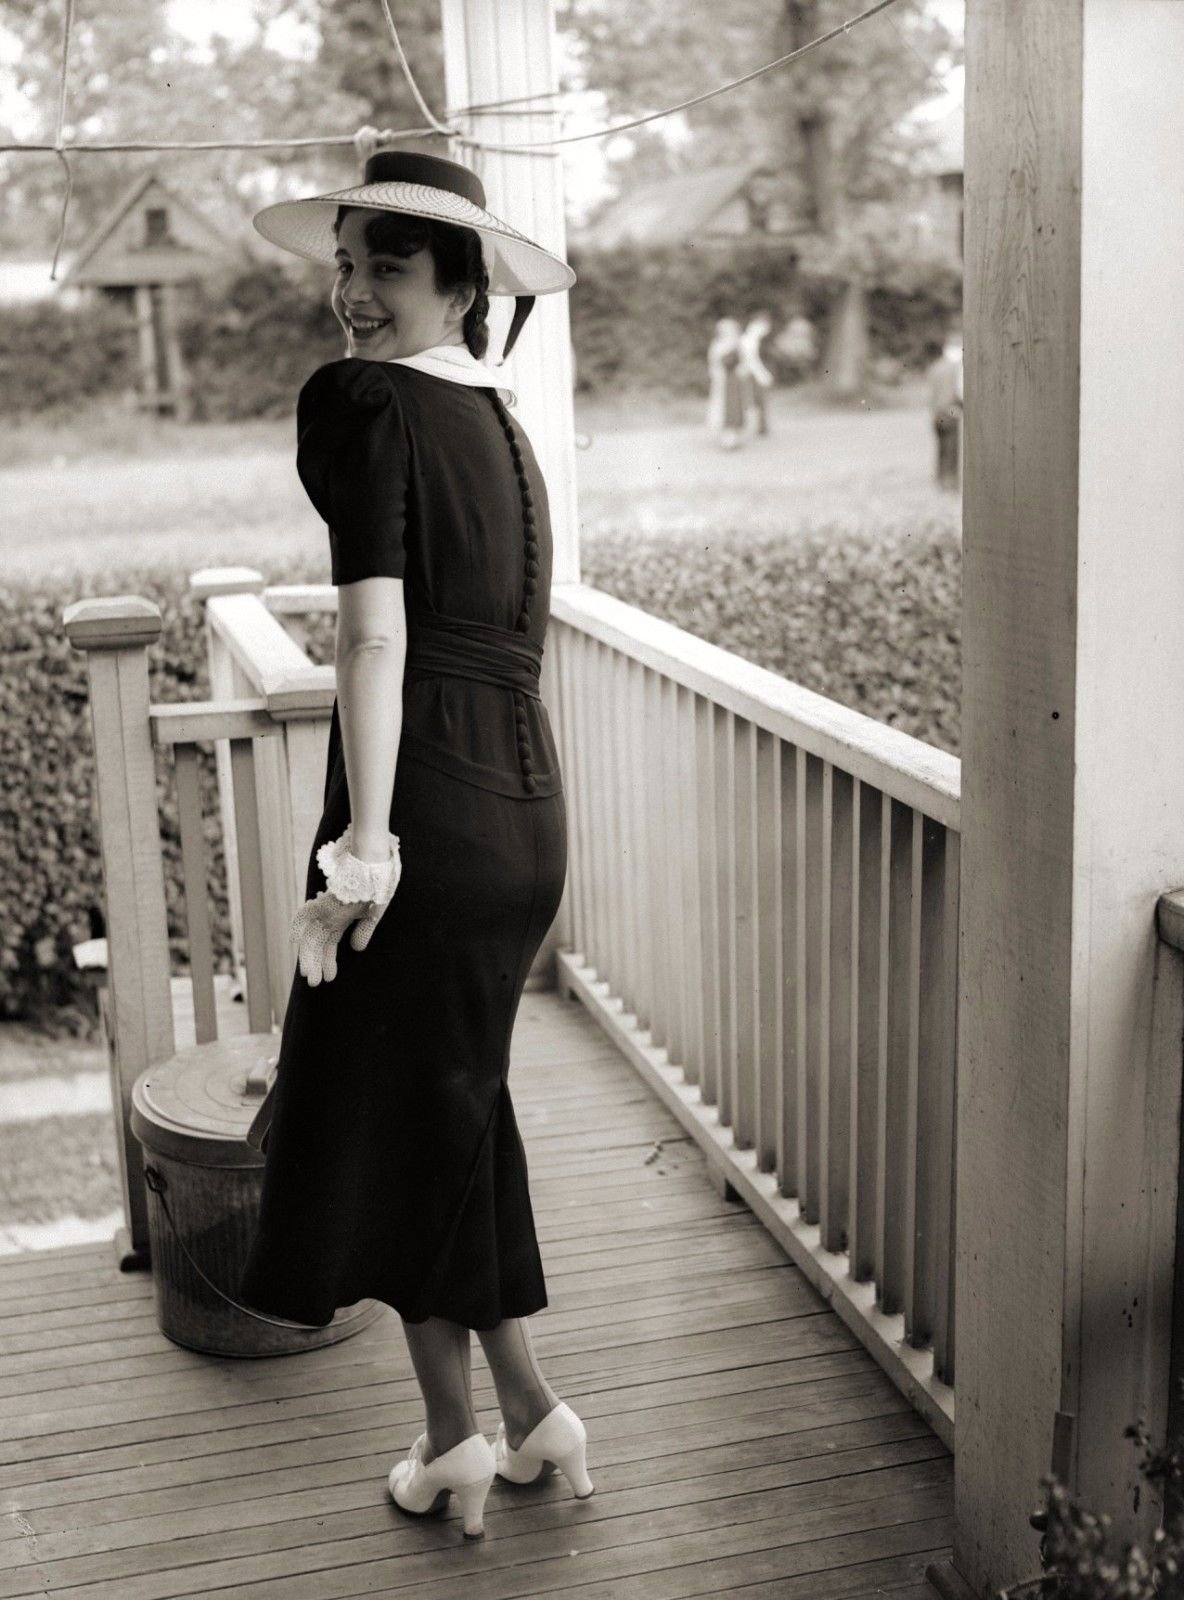 1940s Fashion: What Did Women Wear In The 1940s? Here Are 40 Vintage